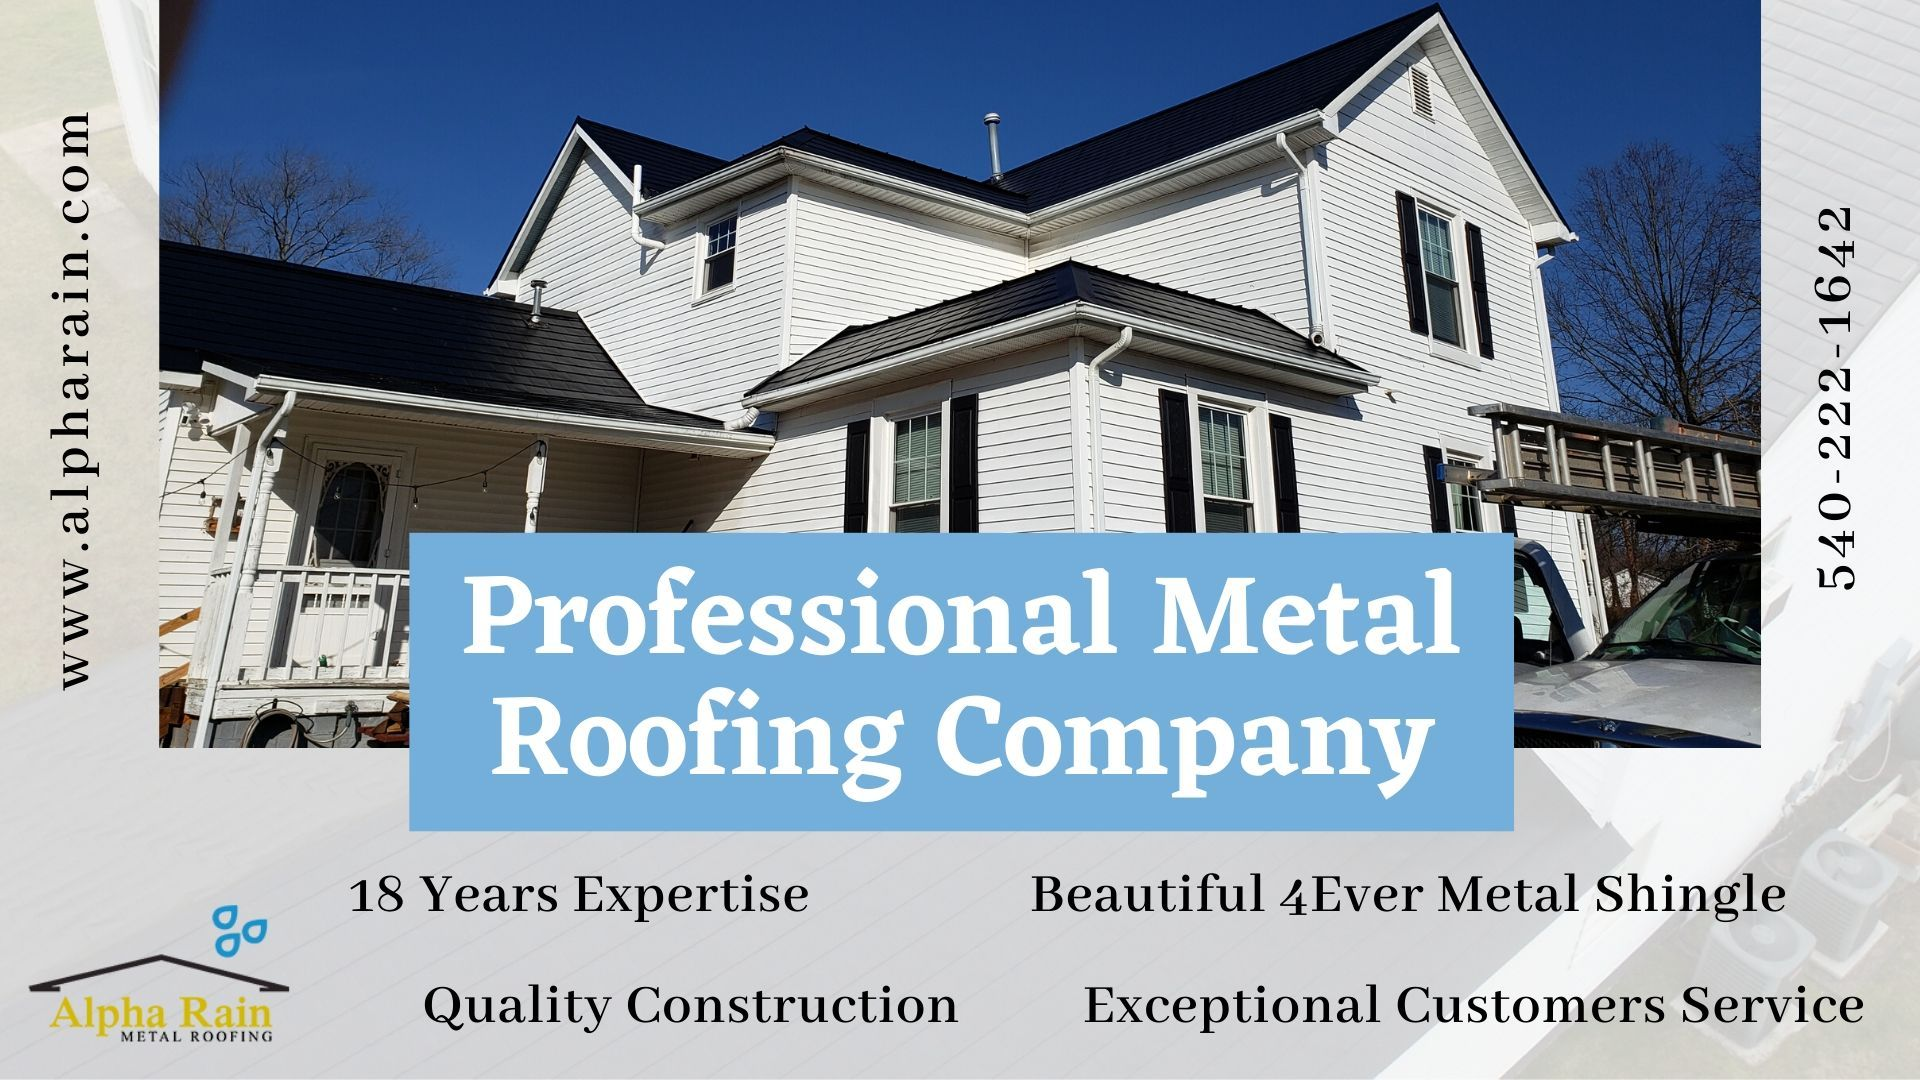 Roofcalc Org Roofing Prices Calculator Roofing Prices Roofing Roof Replacement Cost